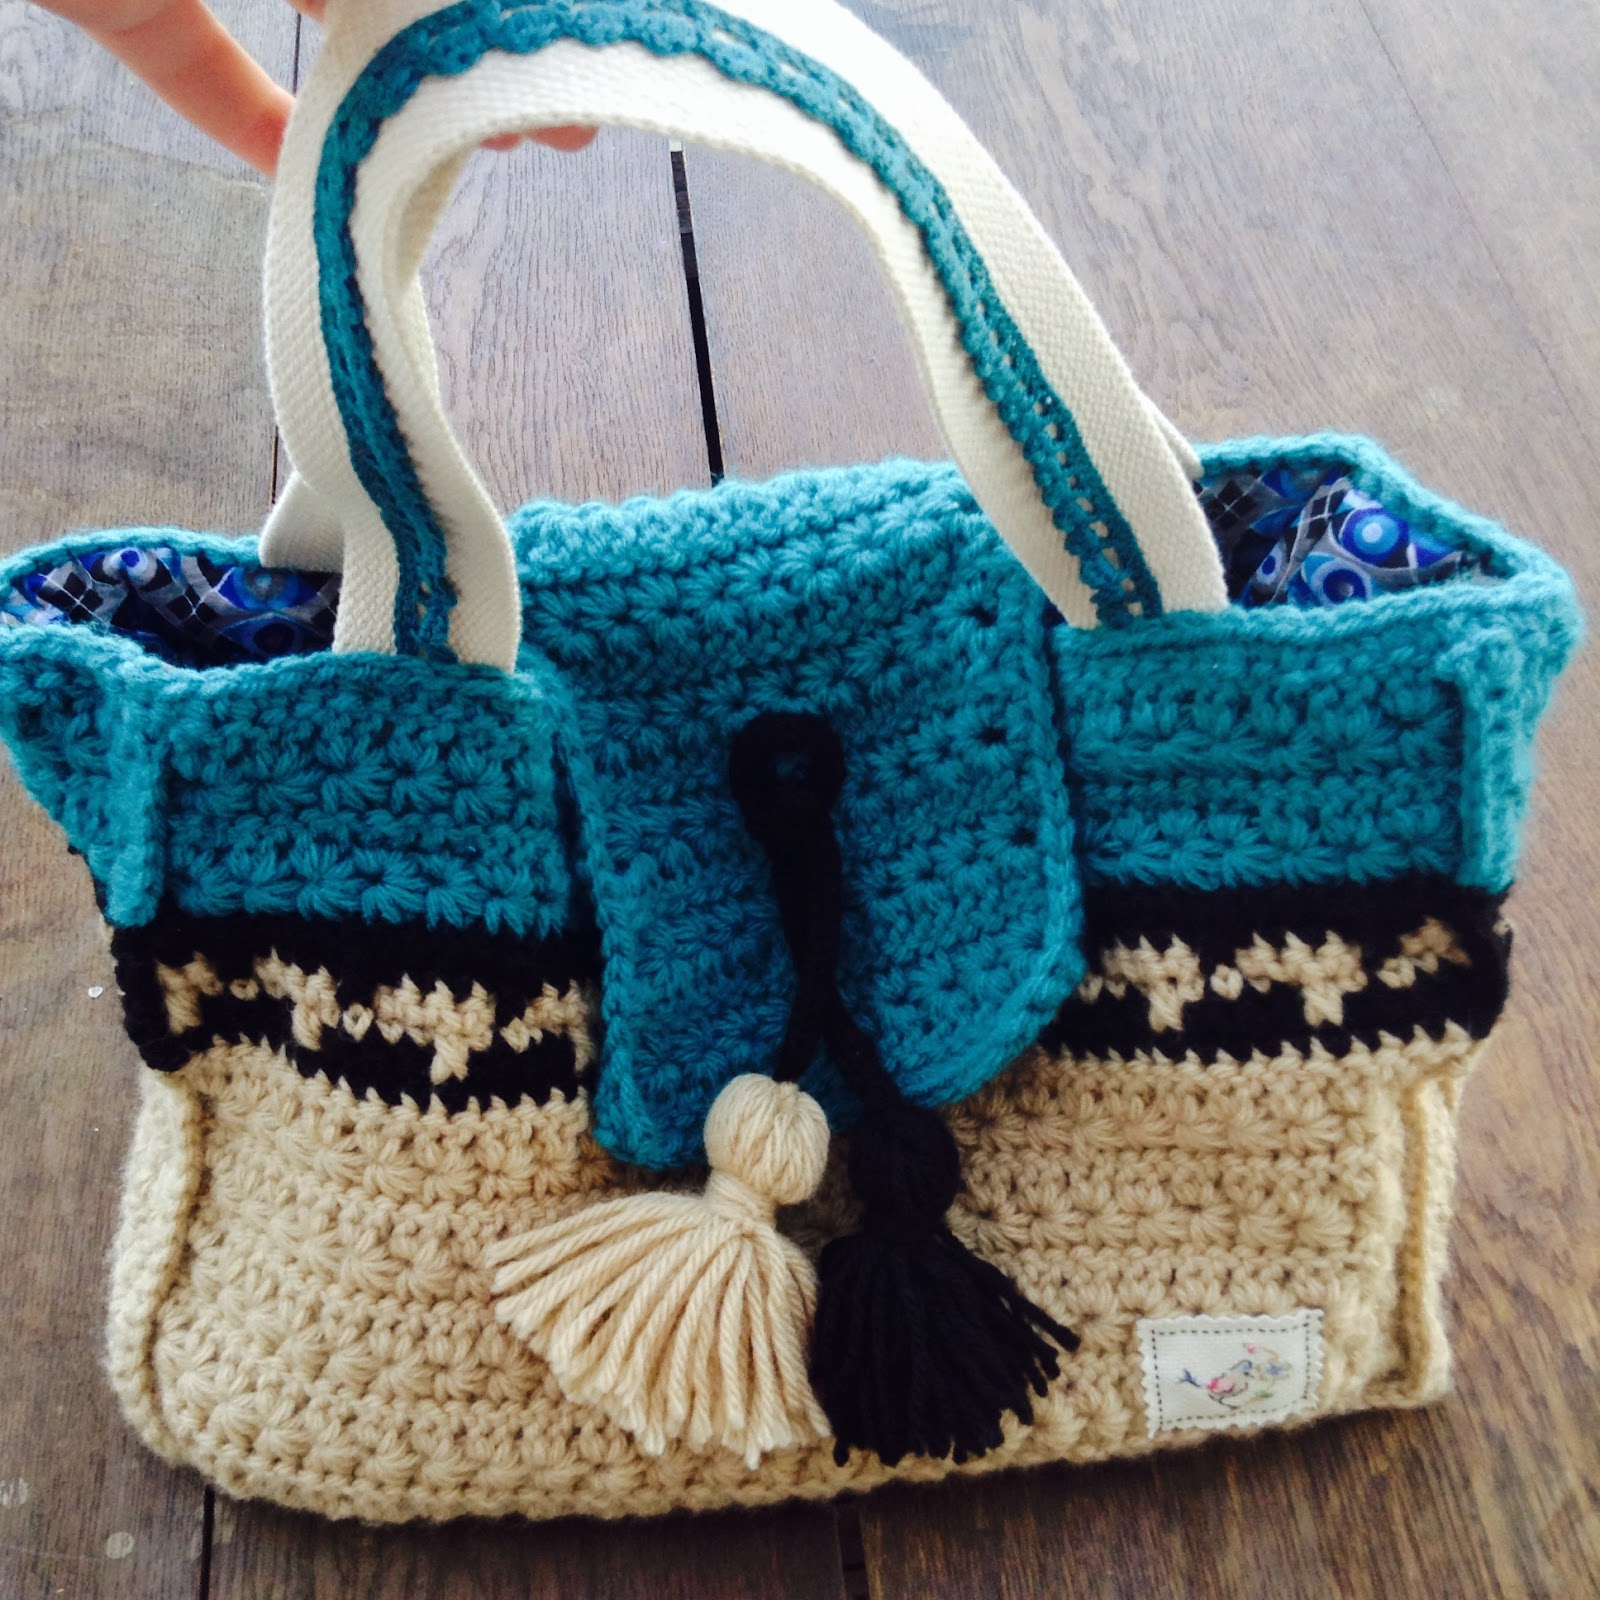 sac à mains en crochet, point étoile